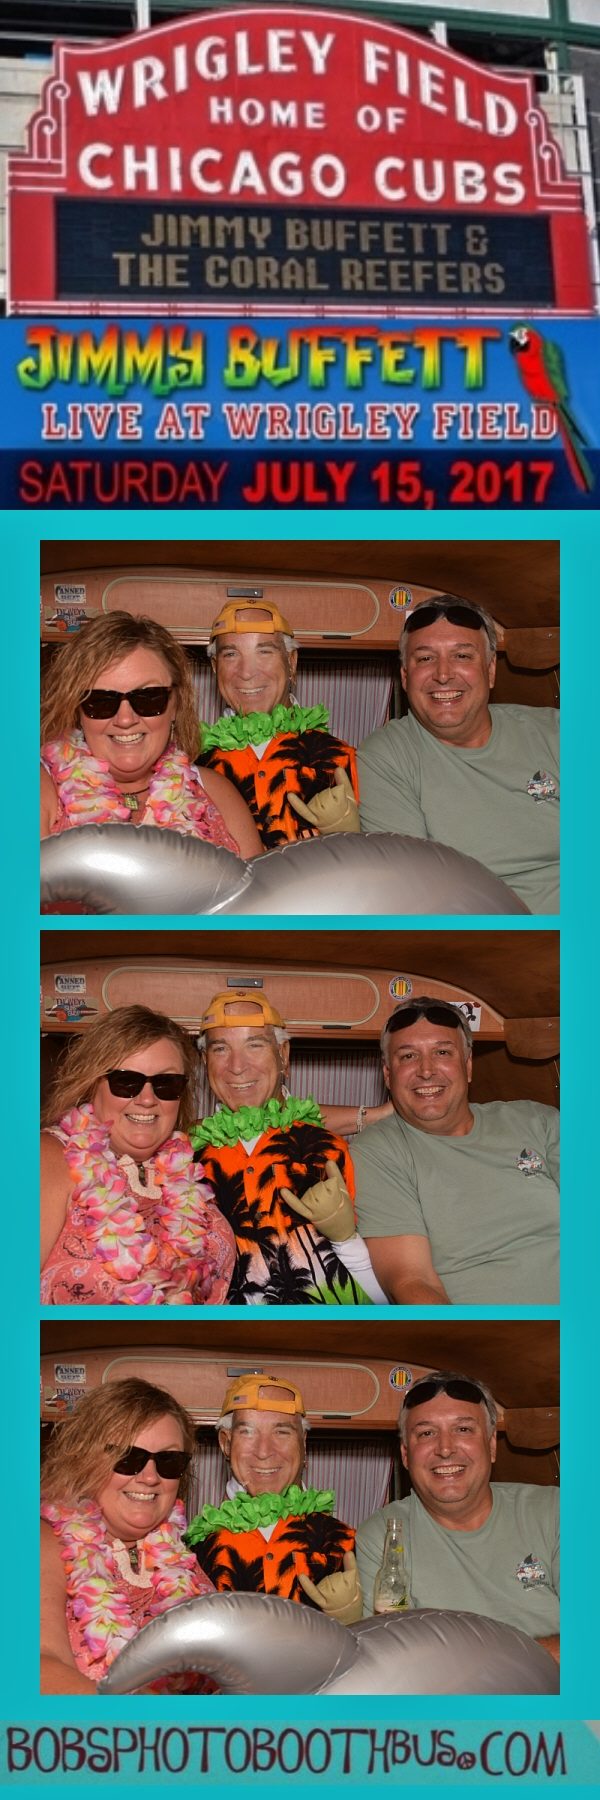 Jimmy Buffett final photo strip graphic_31.jpg